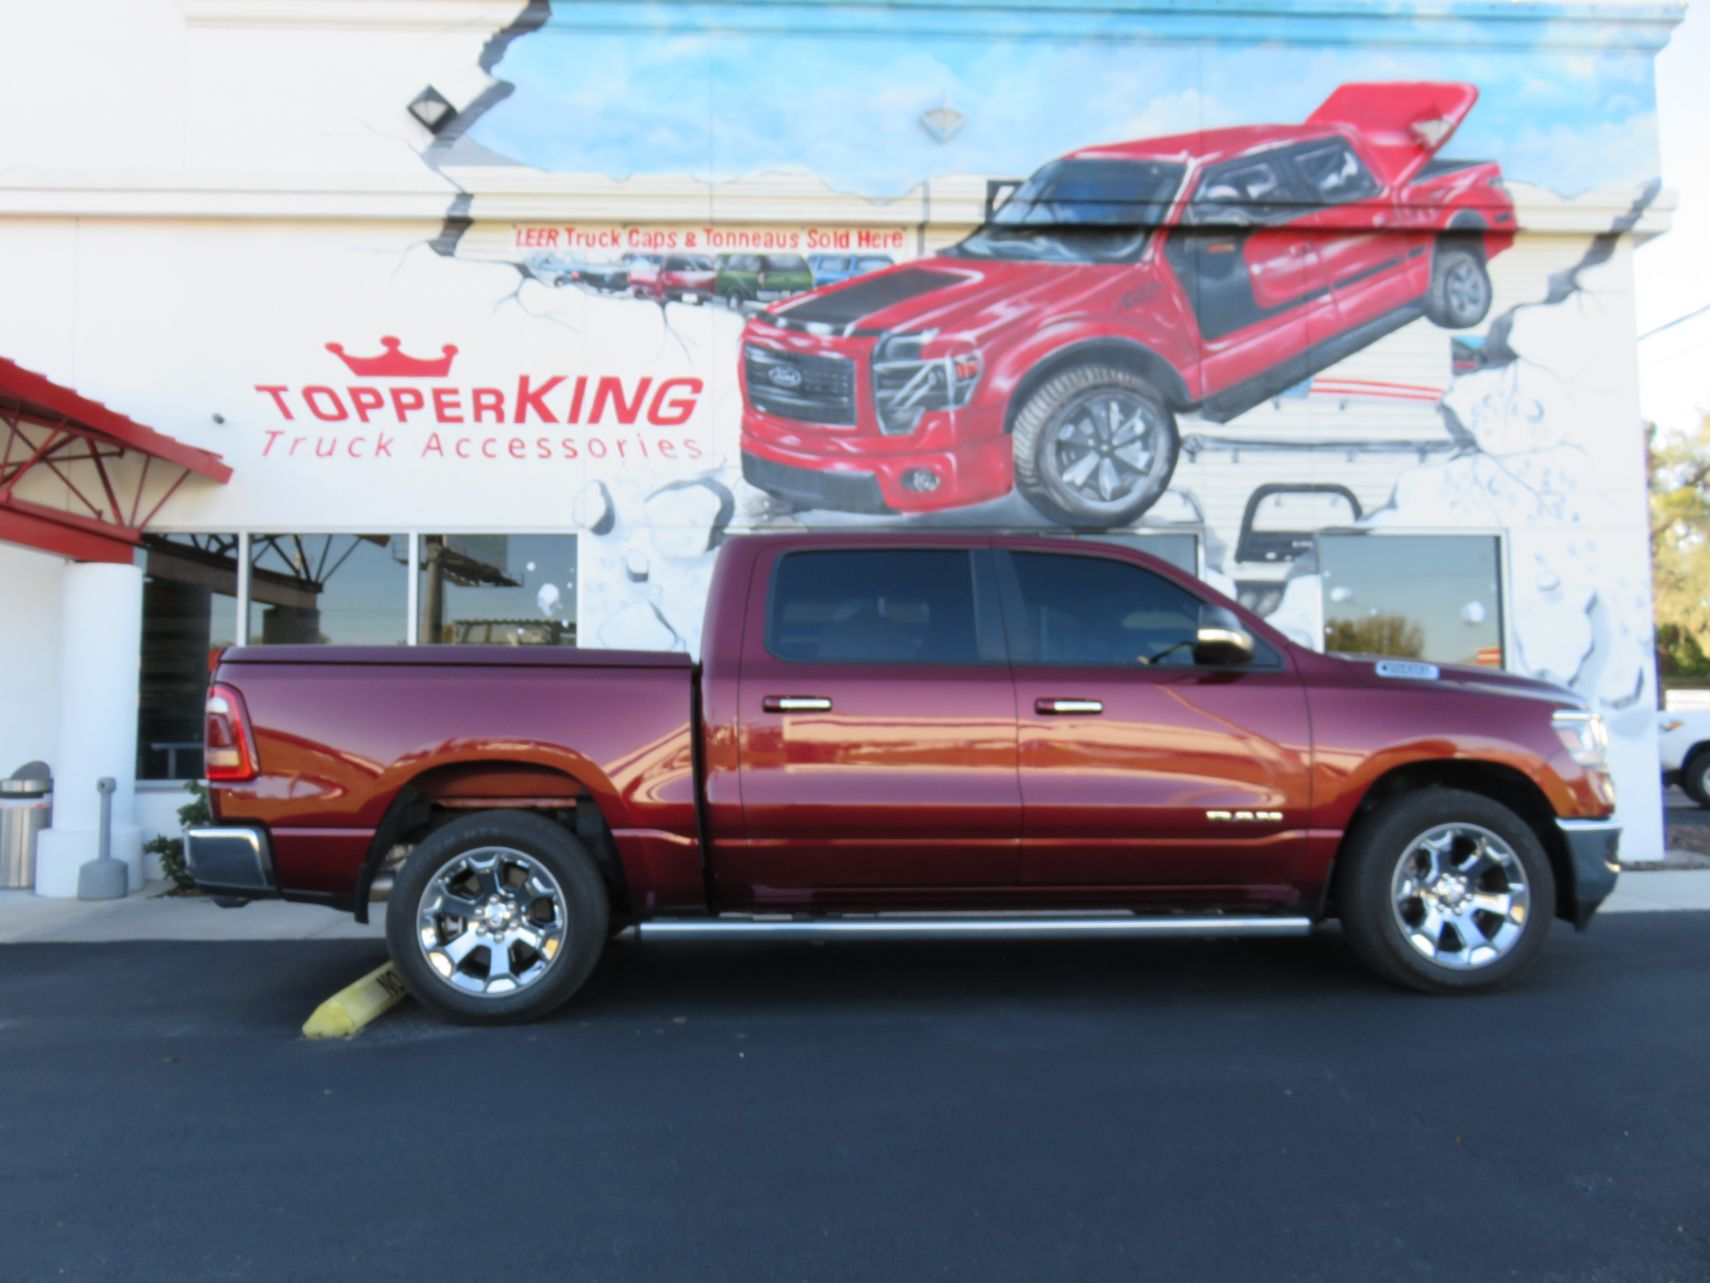 2019 Red Dodge Ram 1500 LEER 550, Custom Hitch, Running Boards, and Tint by TopperKING in Brandon, FL 813-689-2449 or Clearwater, FL 727-530-9066. Call now!